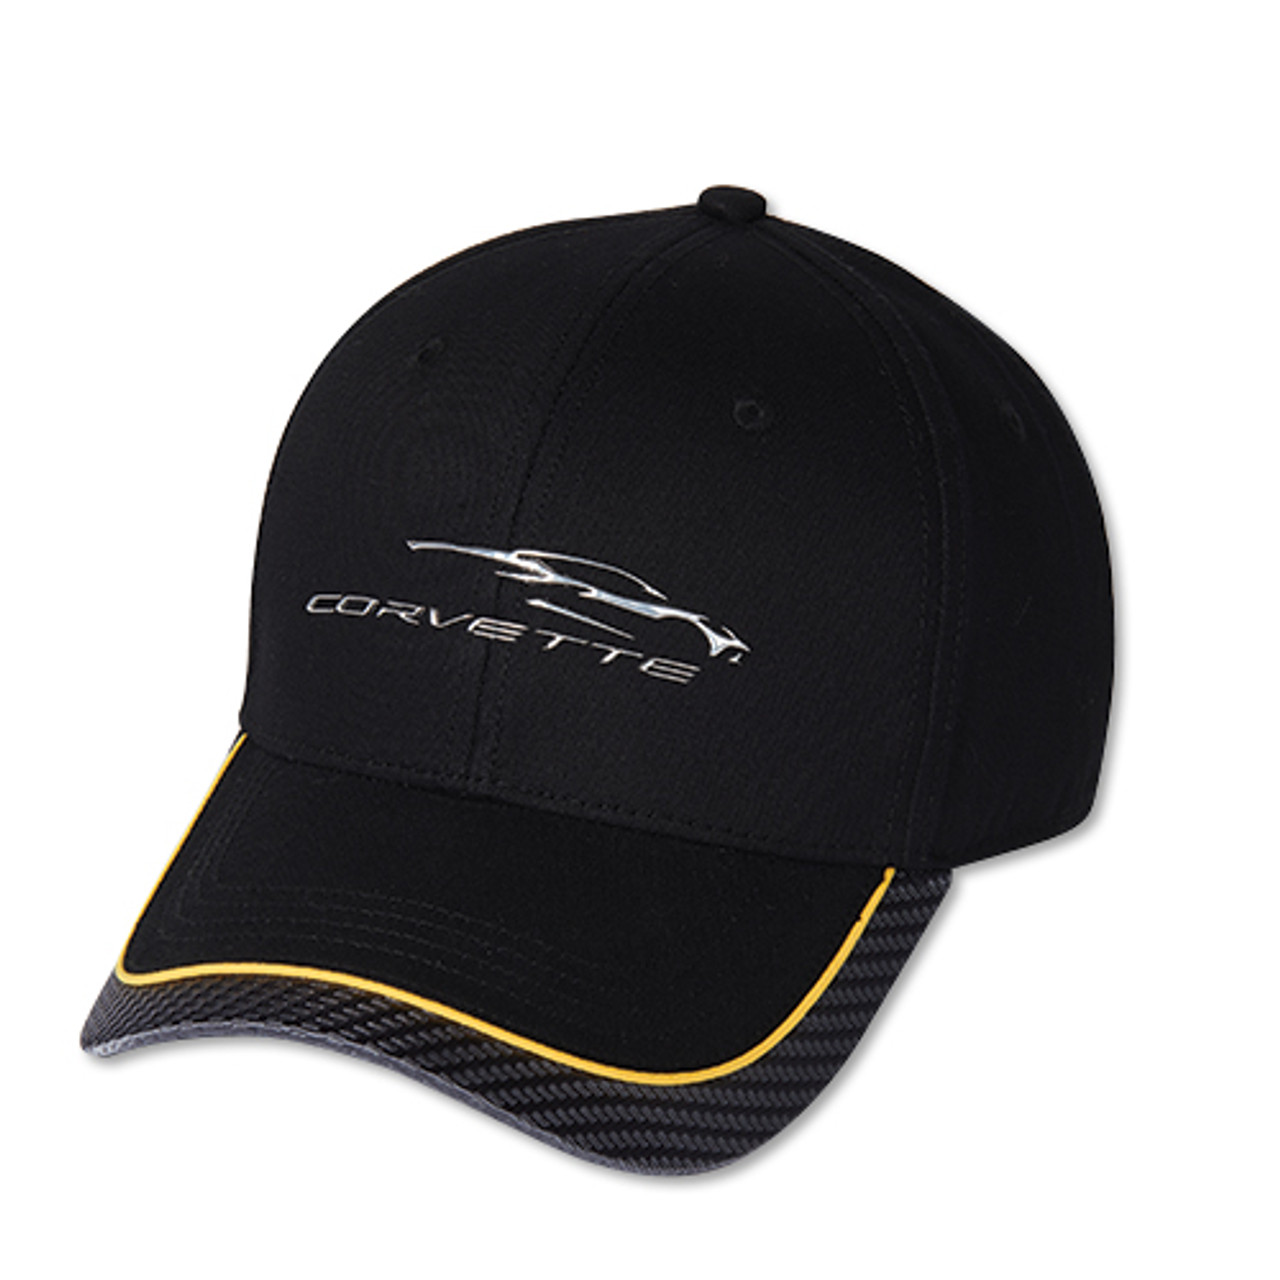 NEXT GENERATION C8 CORVETTE GESTURE CAP